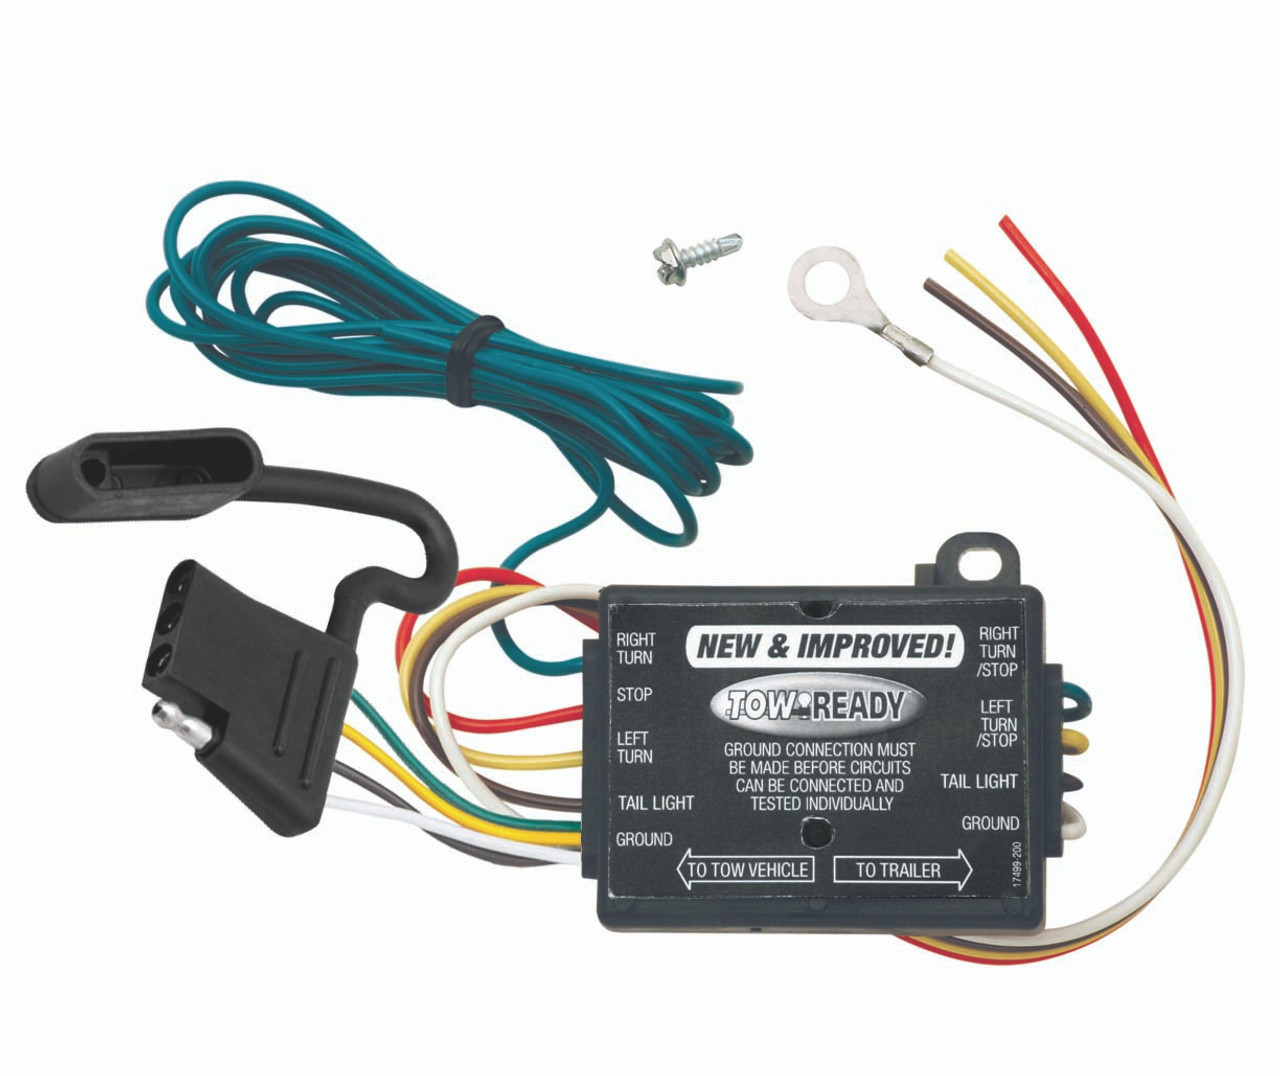 119130 3 wire vehicle to 2 wire trailer upgraded taillight converter [ 1224 x 1029 Pixel ]